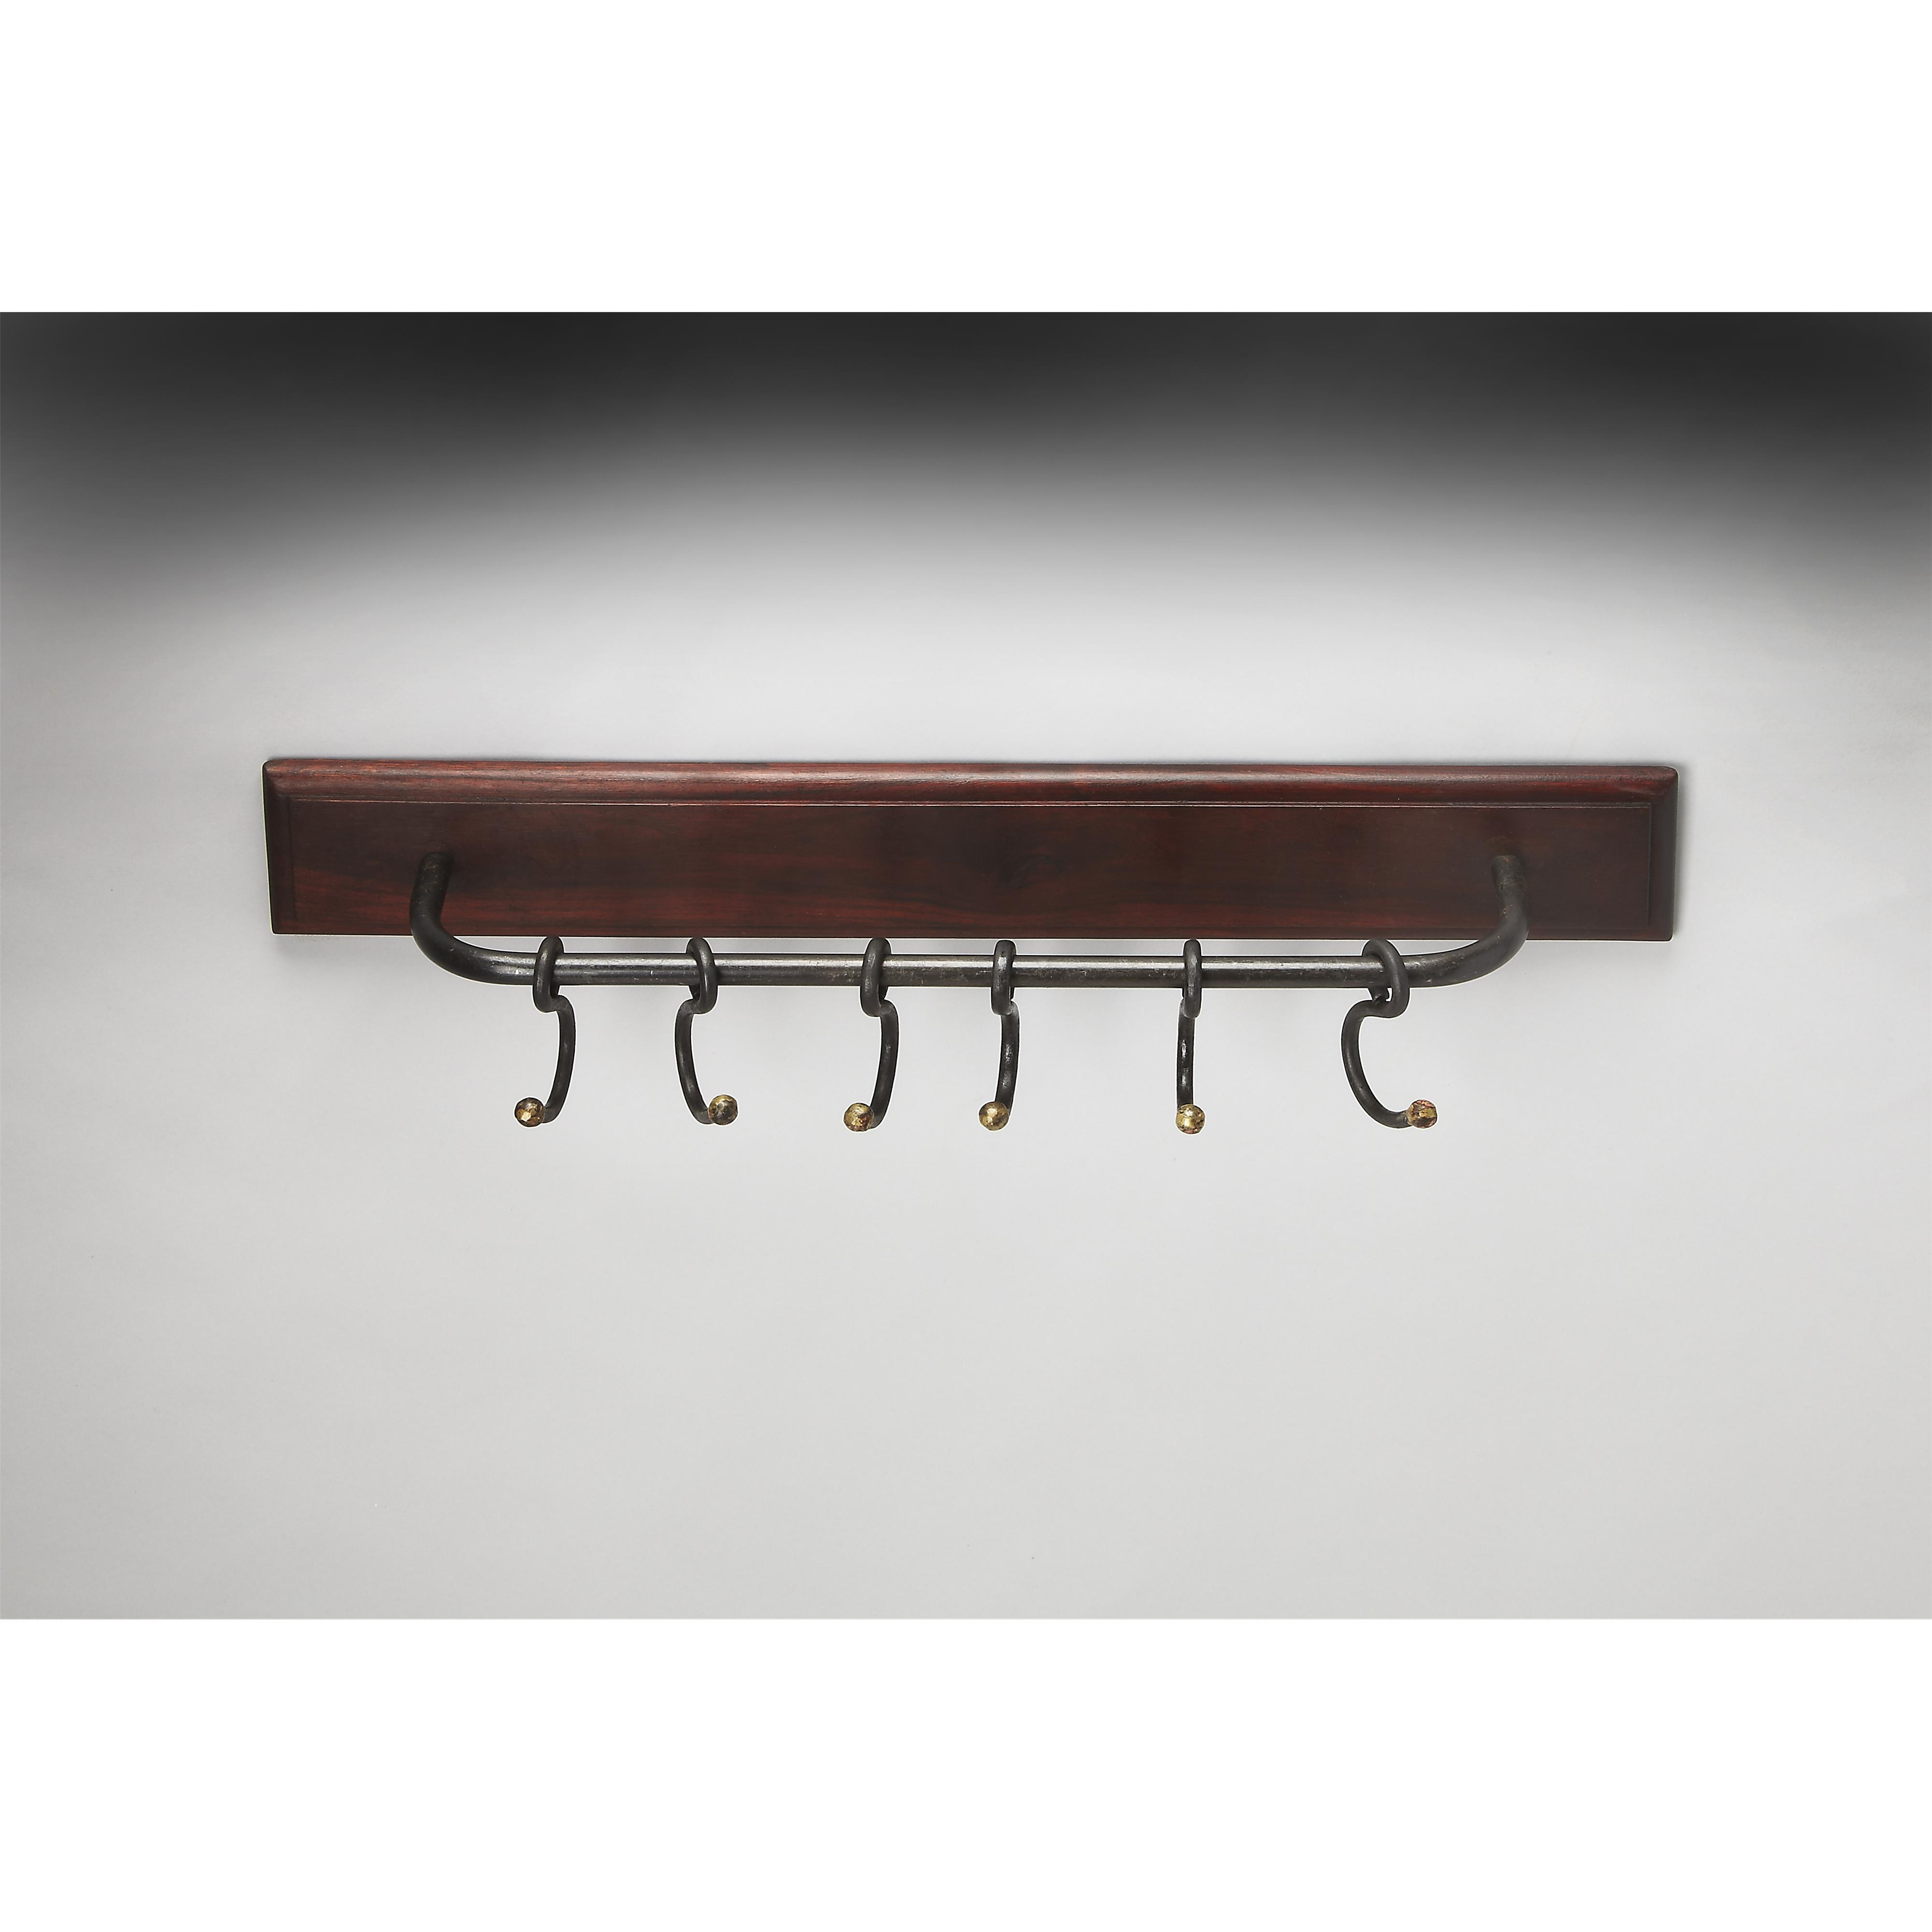 Butler Specialty Company Hors D'oeuvres Wall Rack - Item Number: 3366016